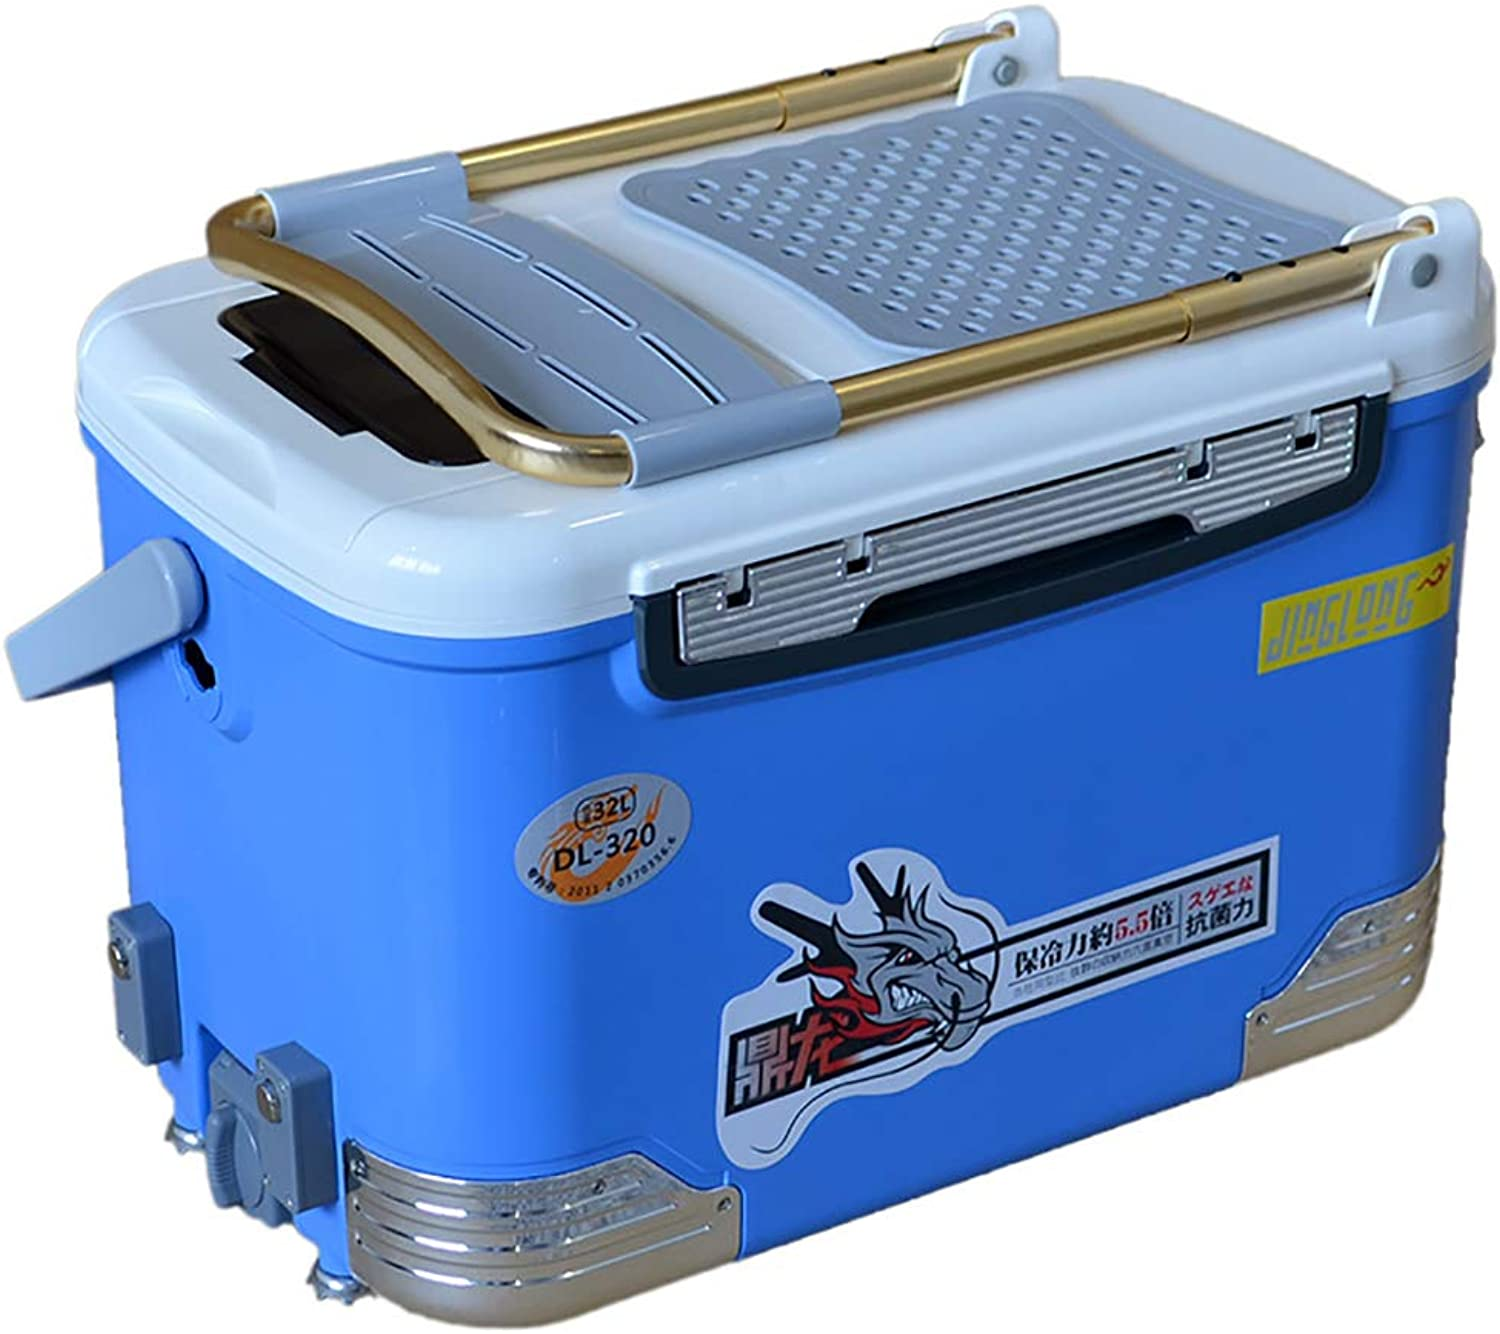 MultiFunction Fishing Incubator Box with Seat 32l Large Capacity Lift Foot Design with Backrest Outdoor Fishing for Men